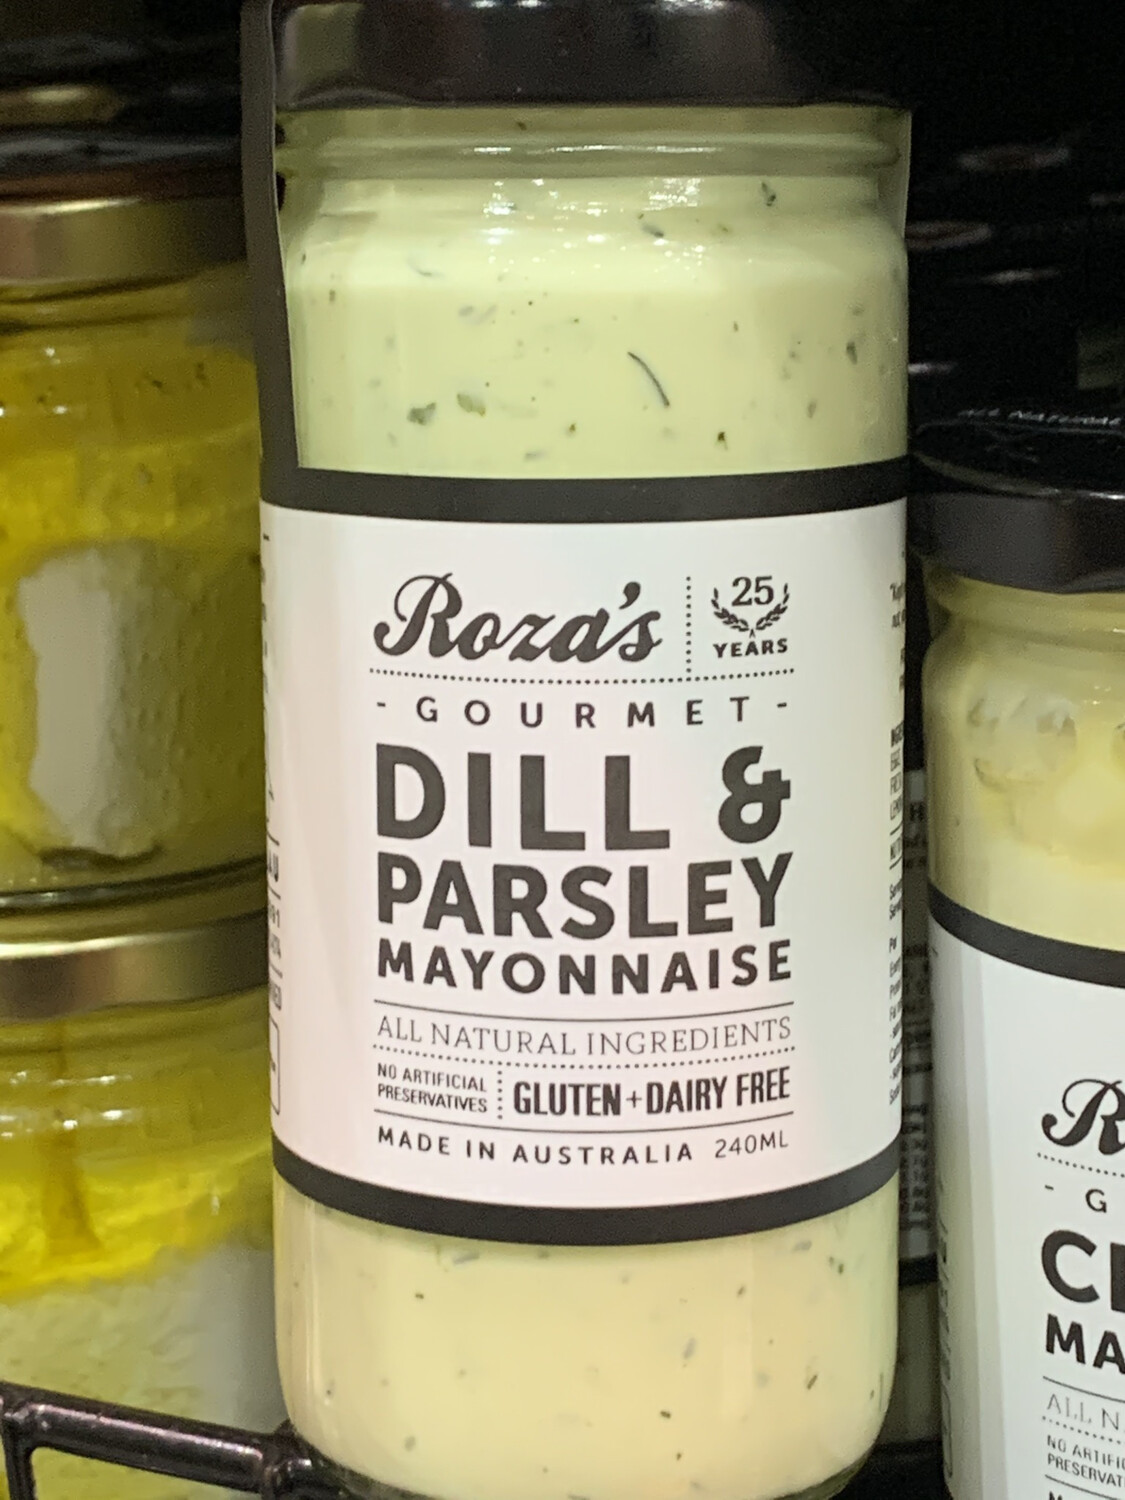 Dill & Parsley Mayonnaise